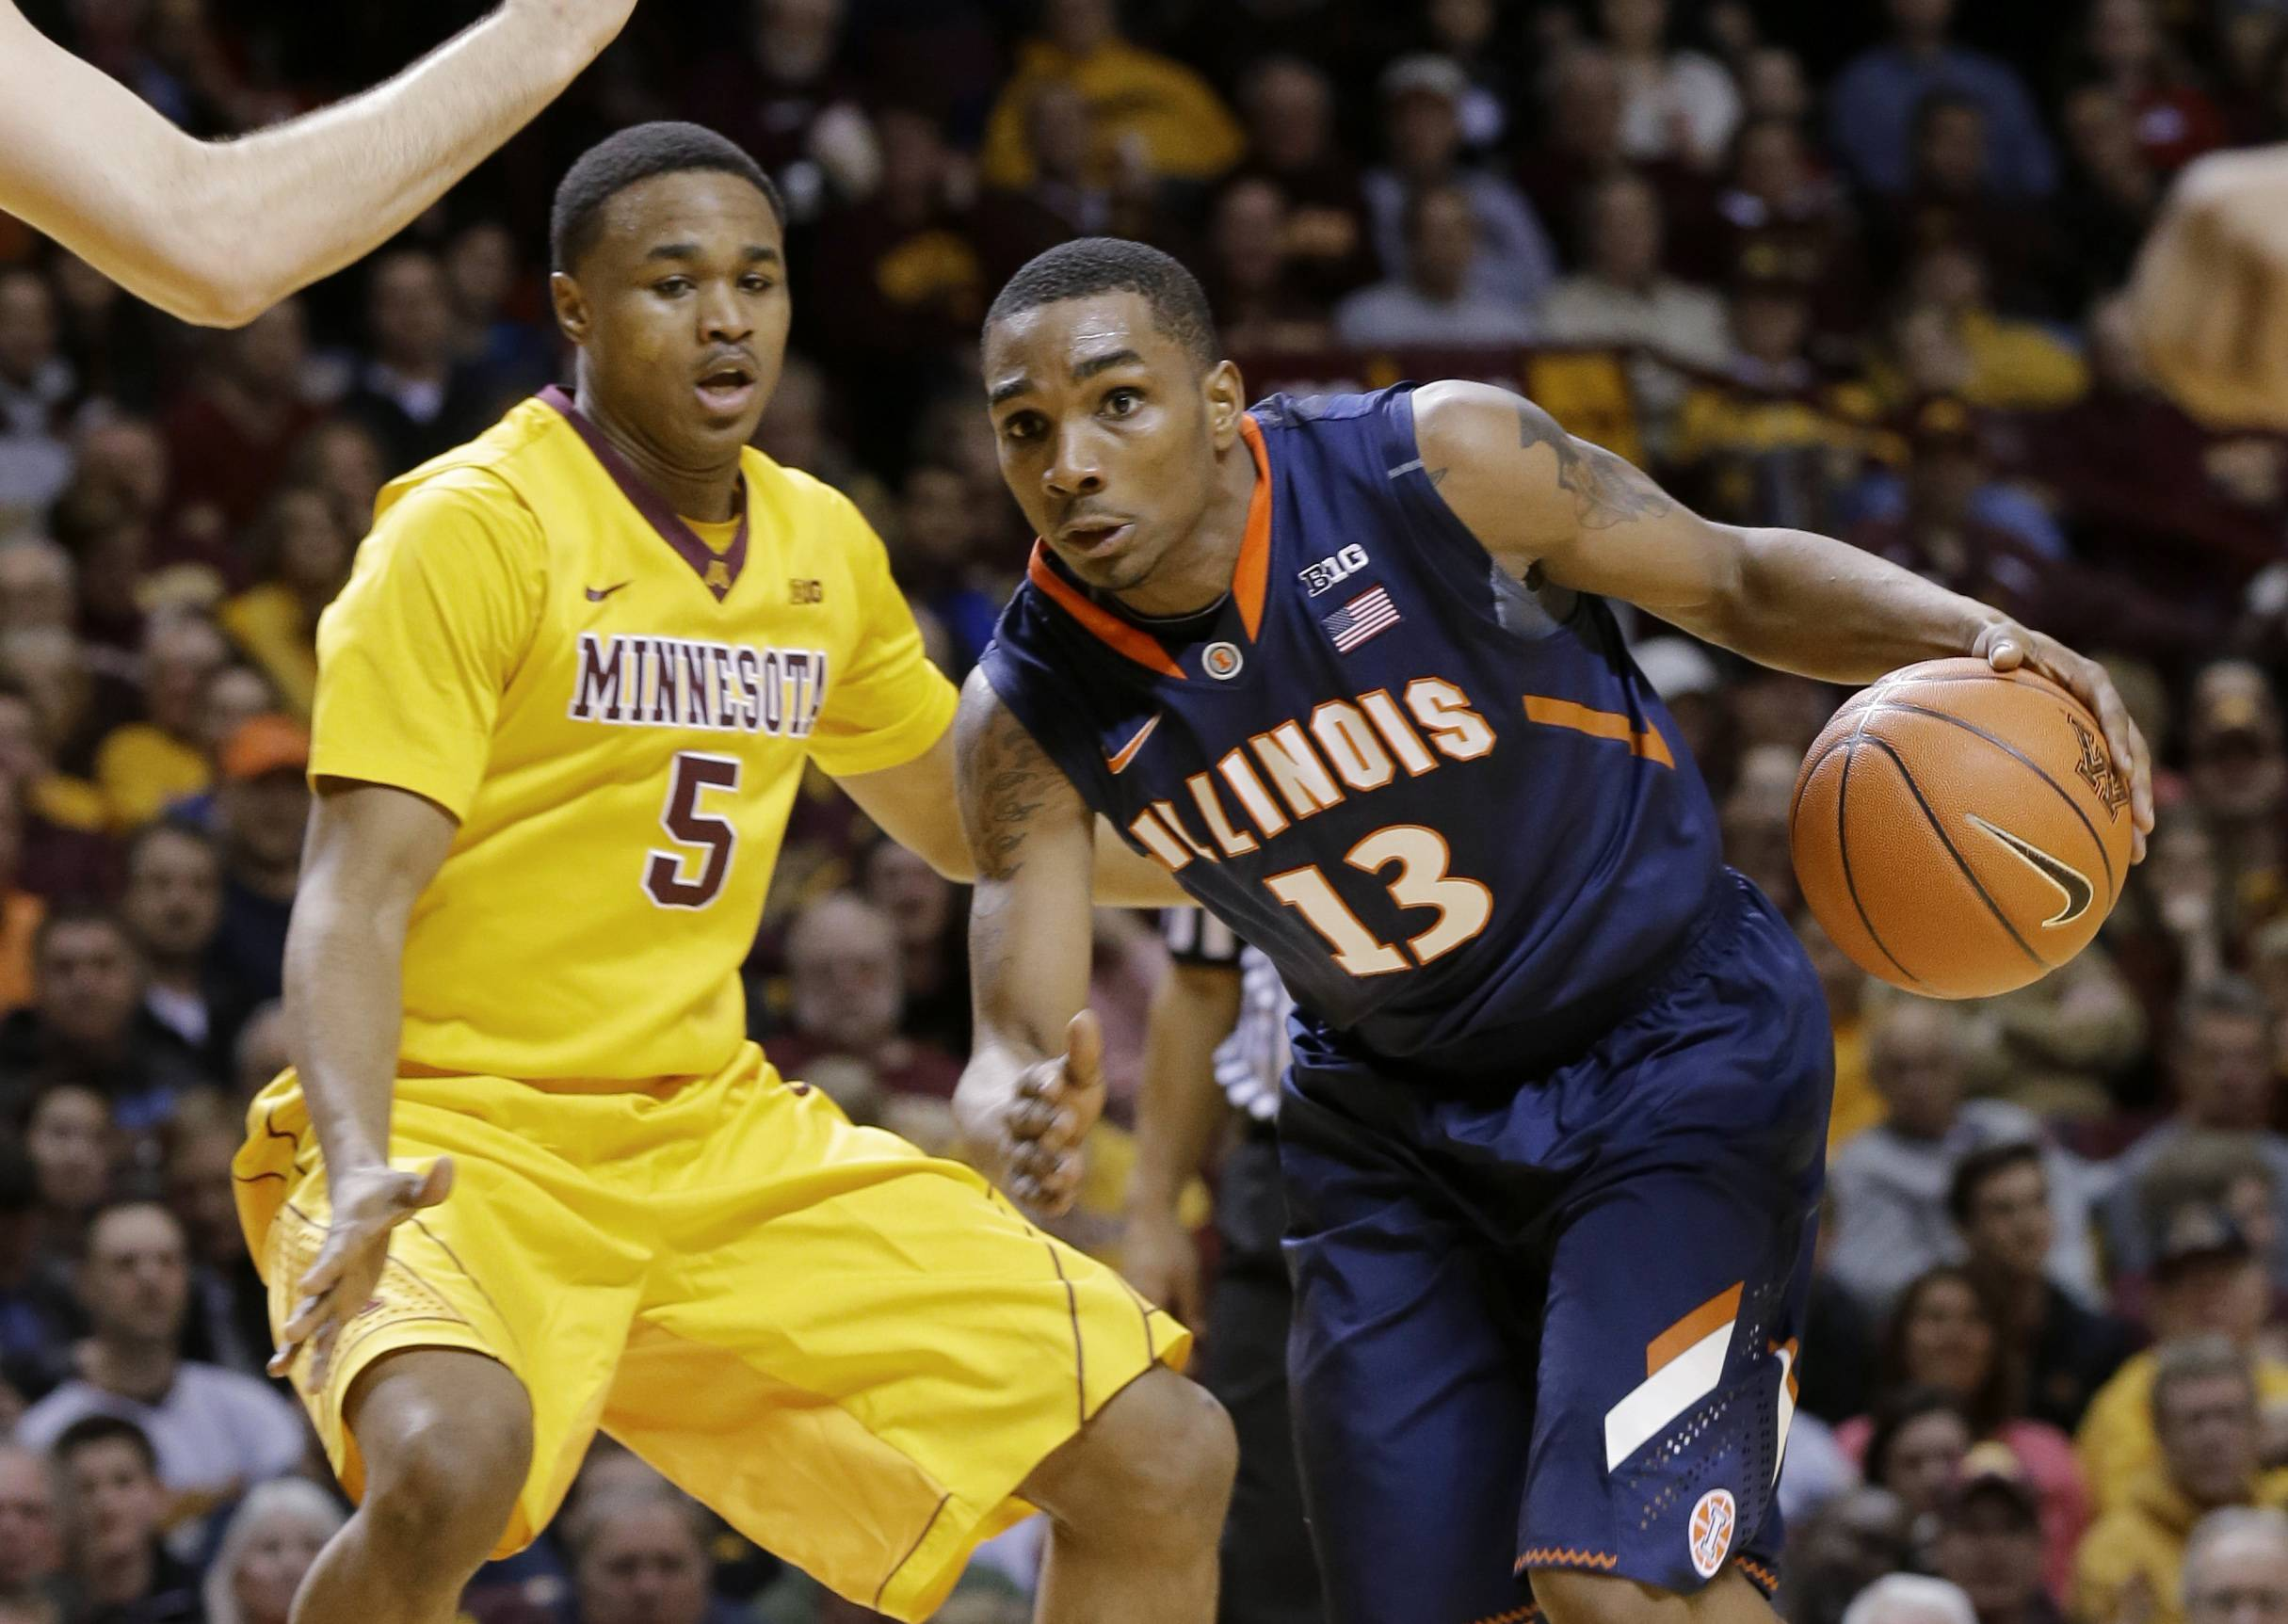 Illinois guard Tracy Abrams (13) drives against Minnesota guard Daquein McNeil (5) during the first half of an NCAA college basketball game in Minneapolis, Wednesday, Feb. 19, 2014.